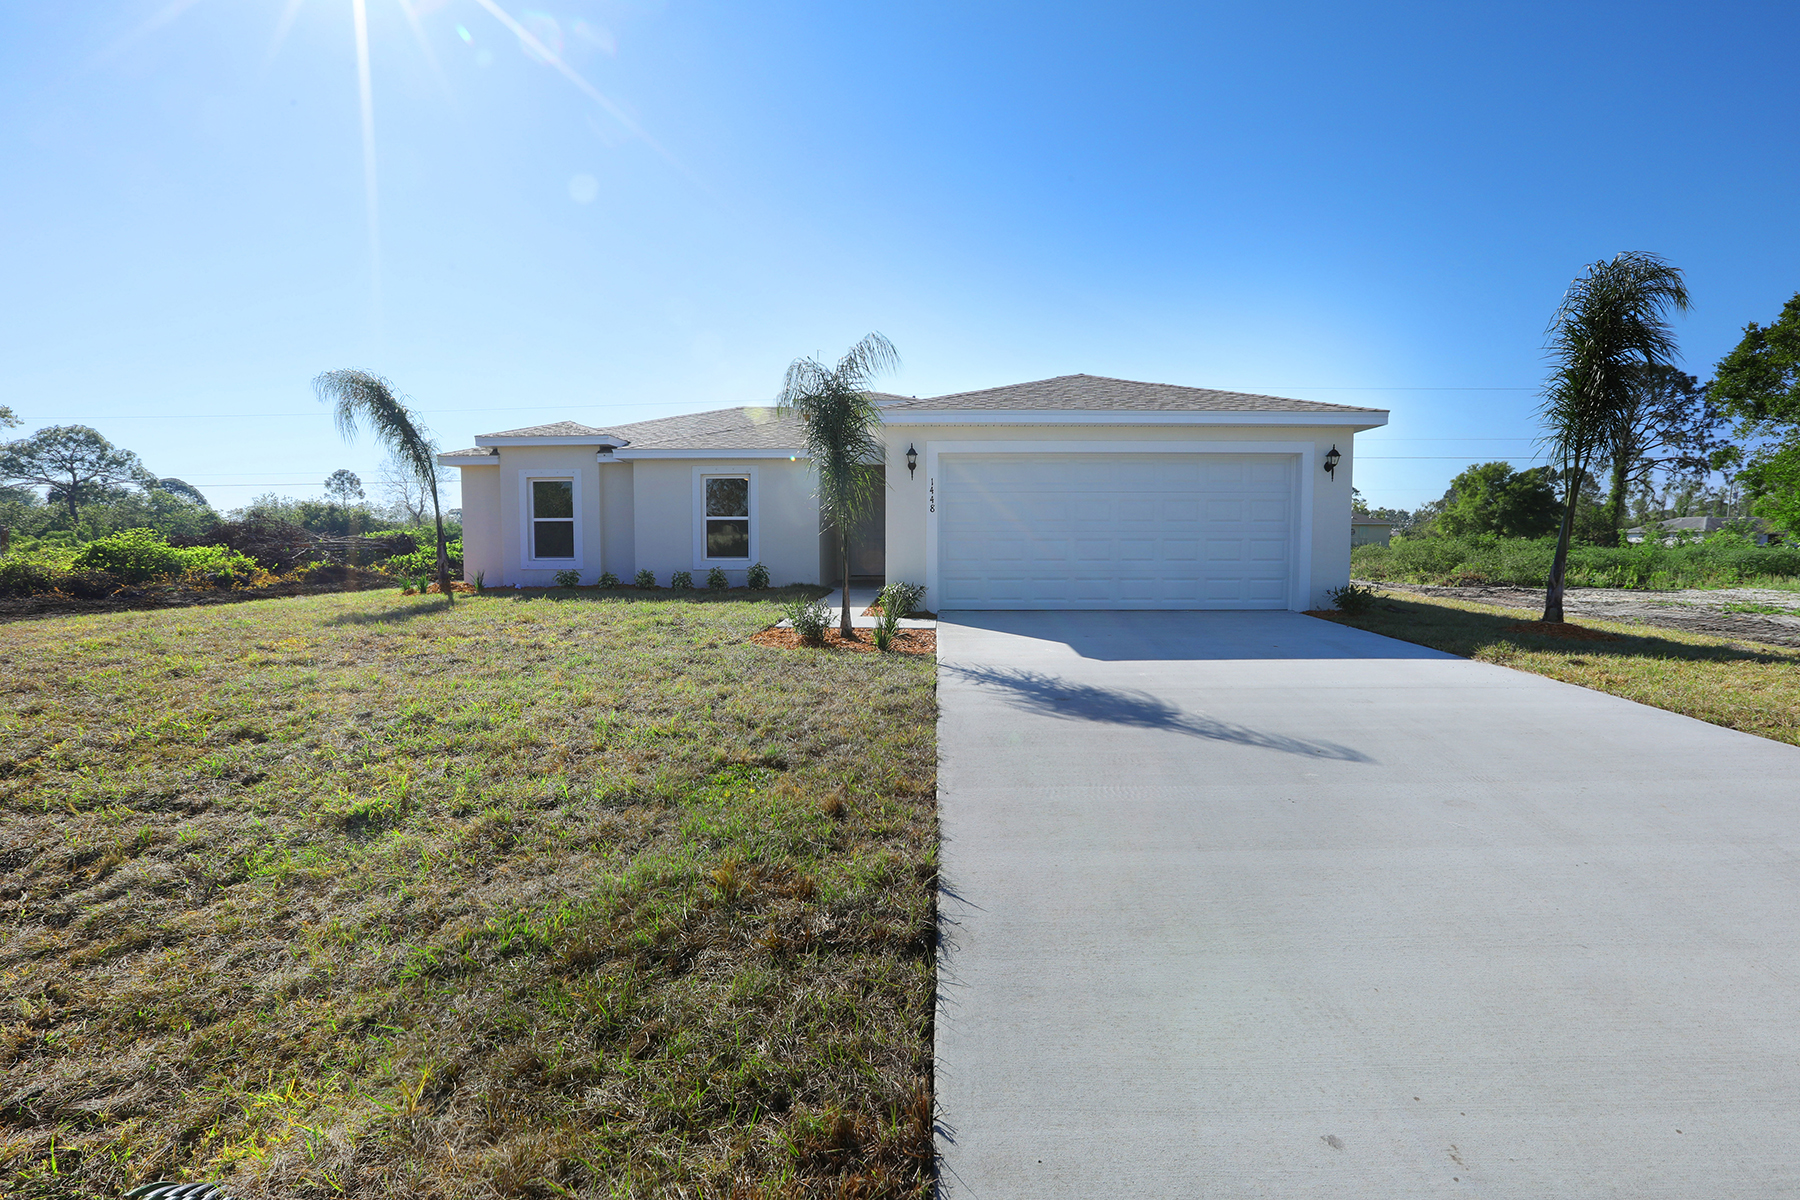 Single Family Homes for Active at PALM BAY 1457 Palau St Palm Bay, Florida 32909 United States